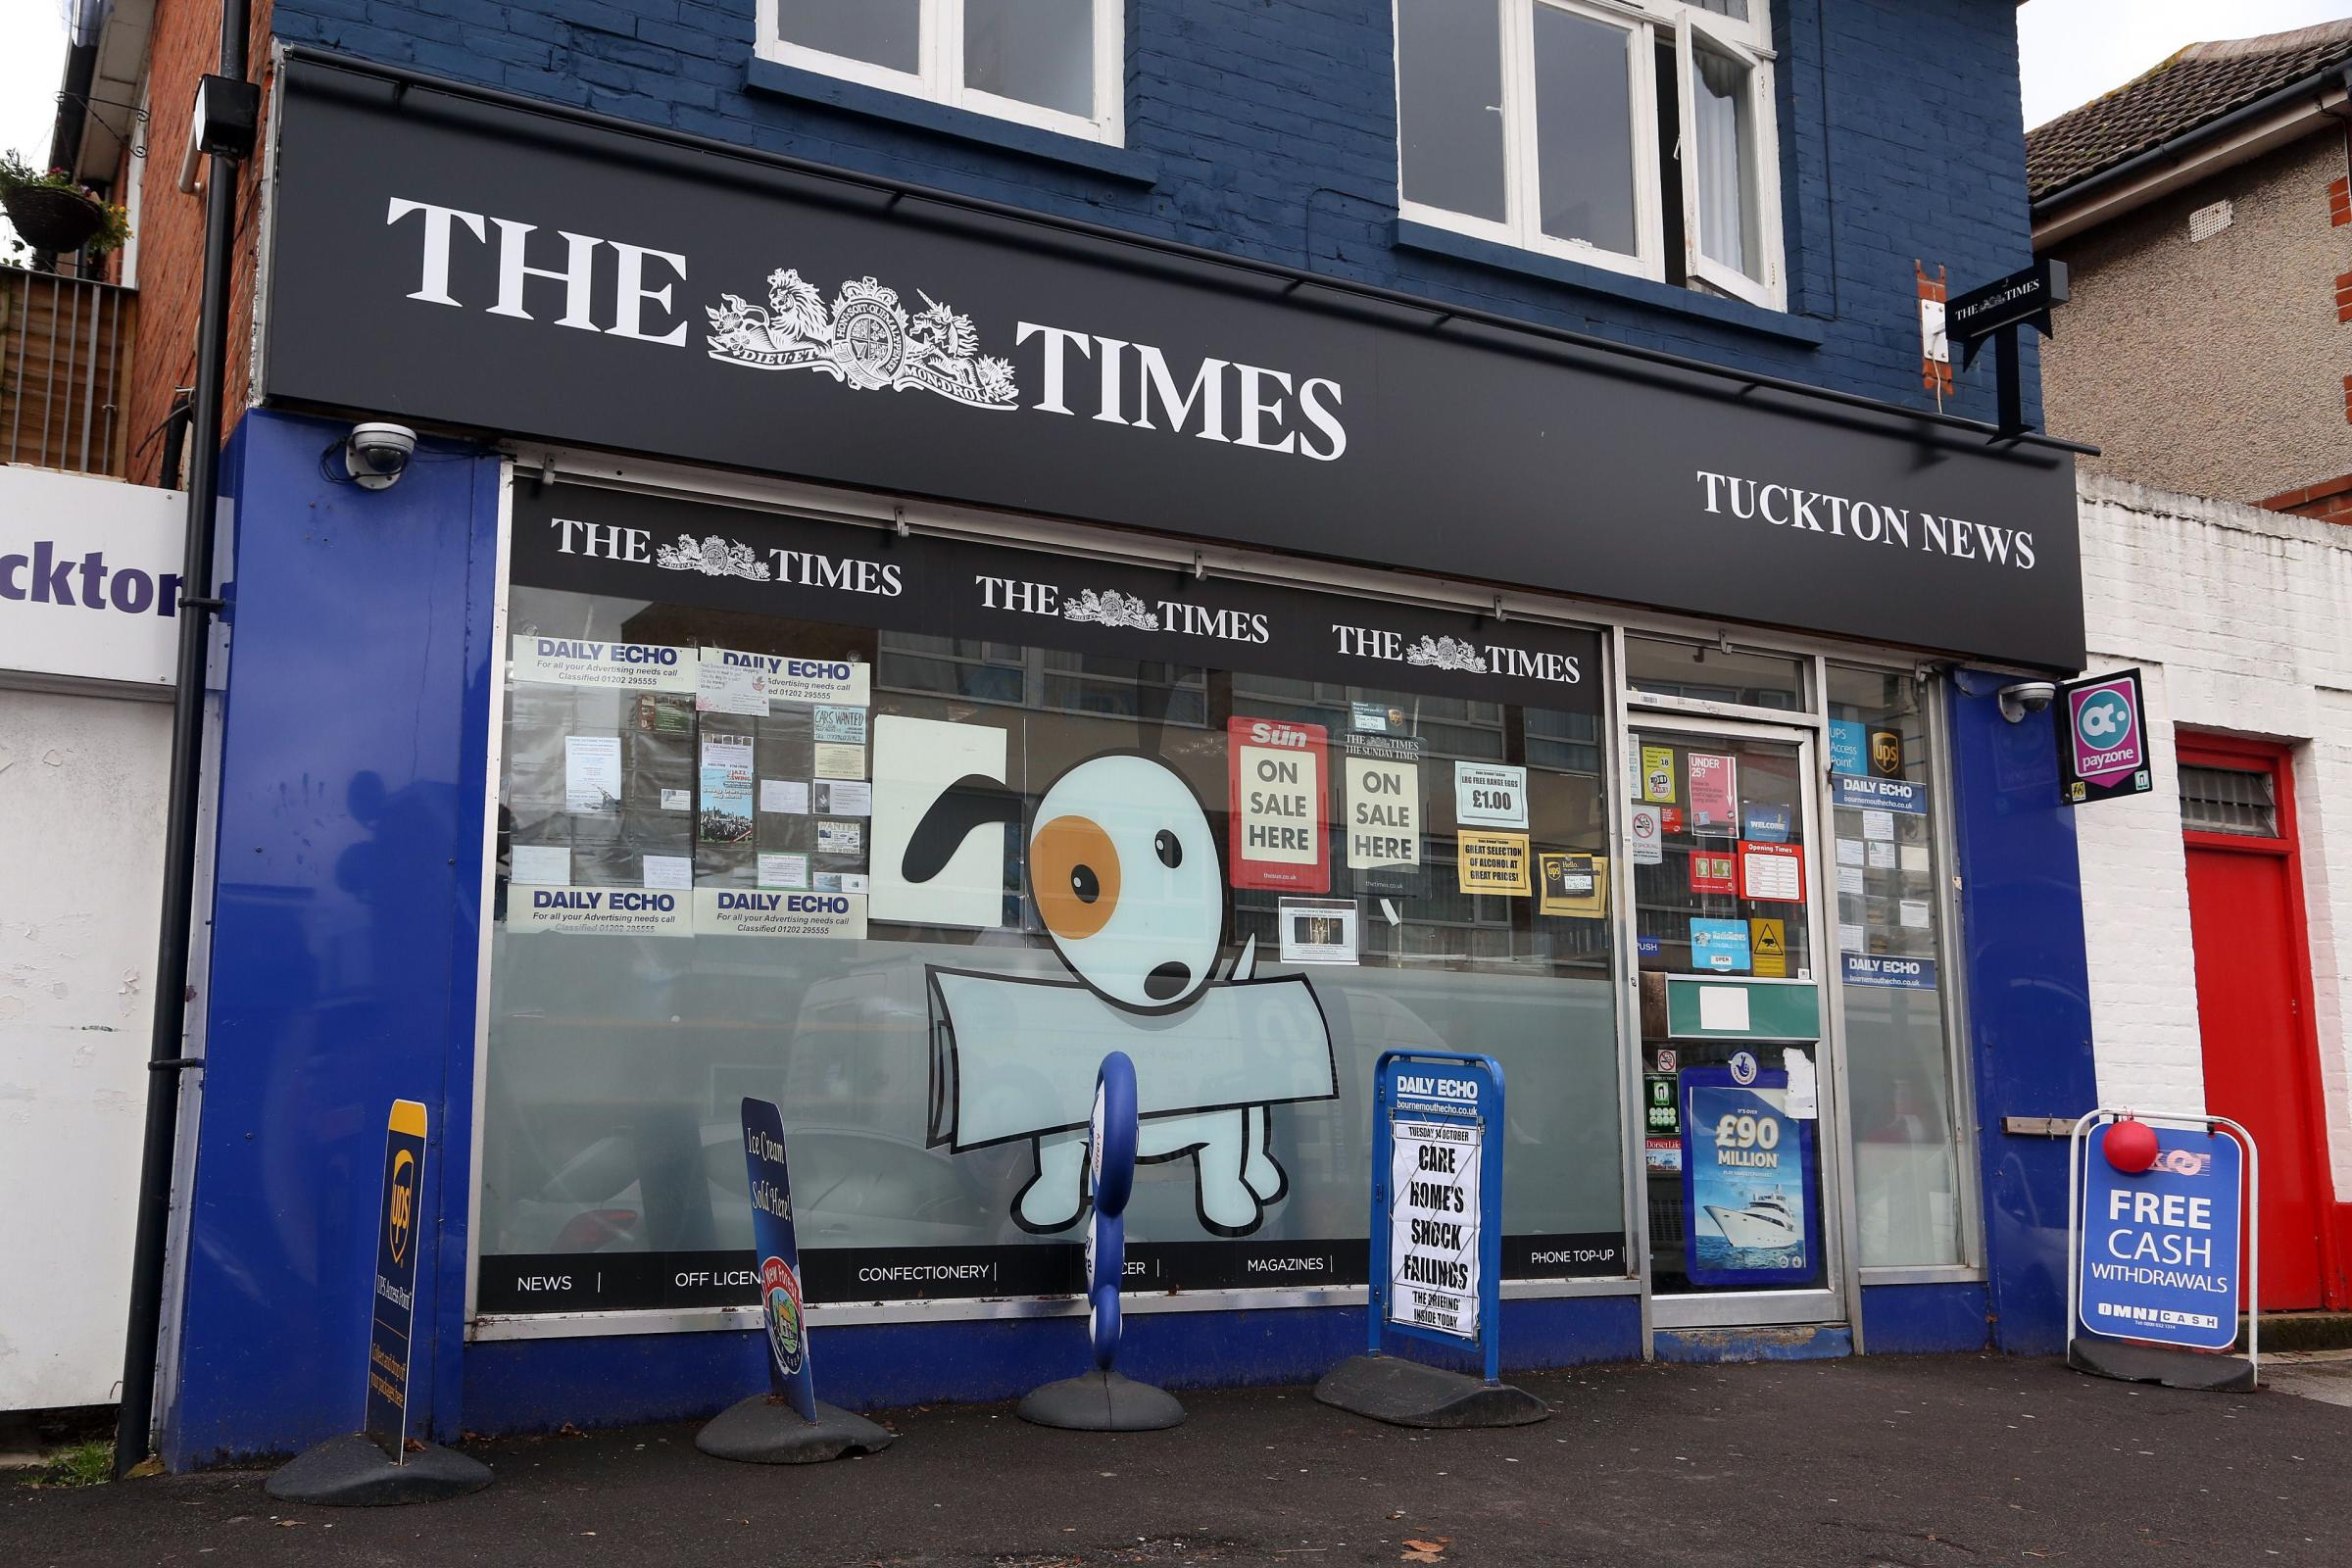 The family-owned Tuckton News in 2011. The business closed after a trusted employee stole £20,000 from the till